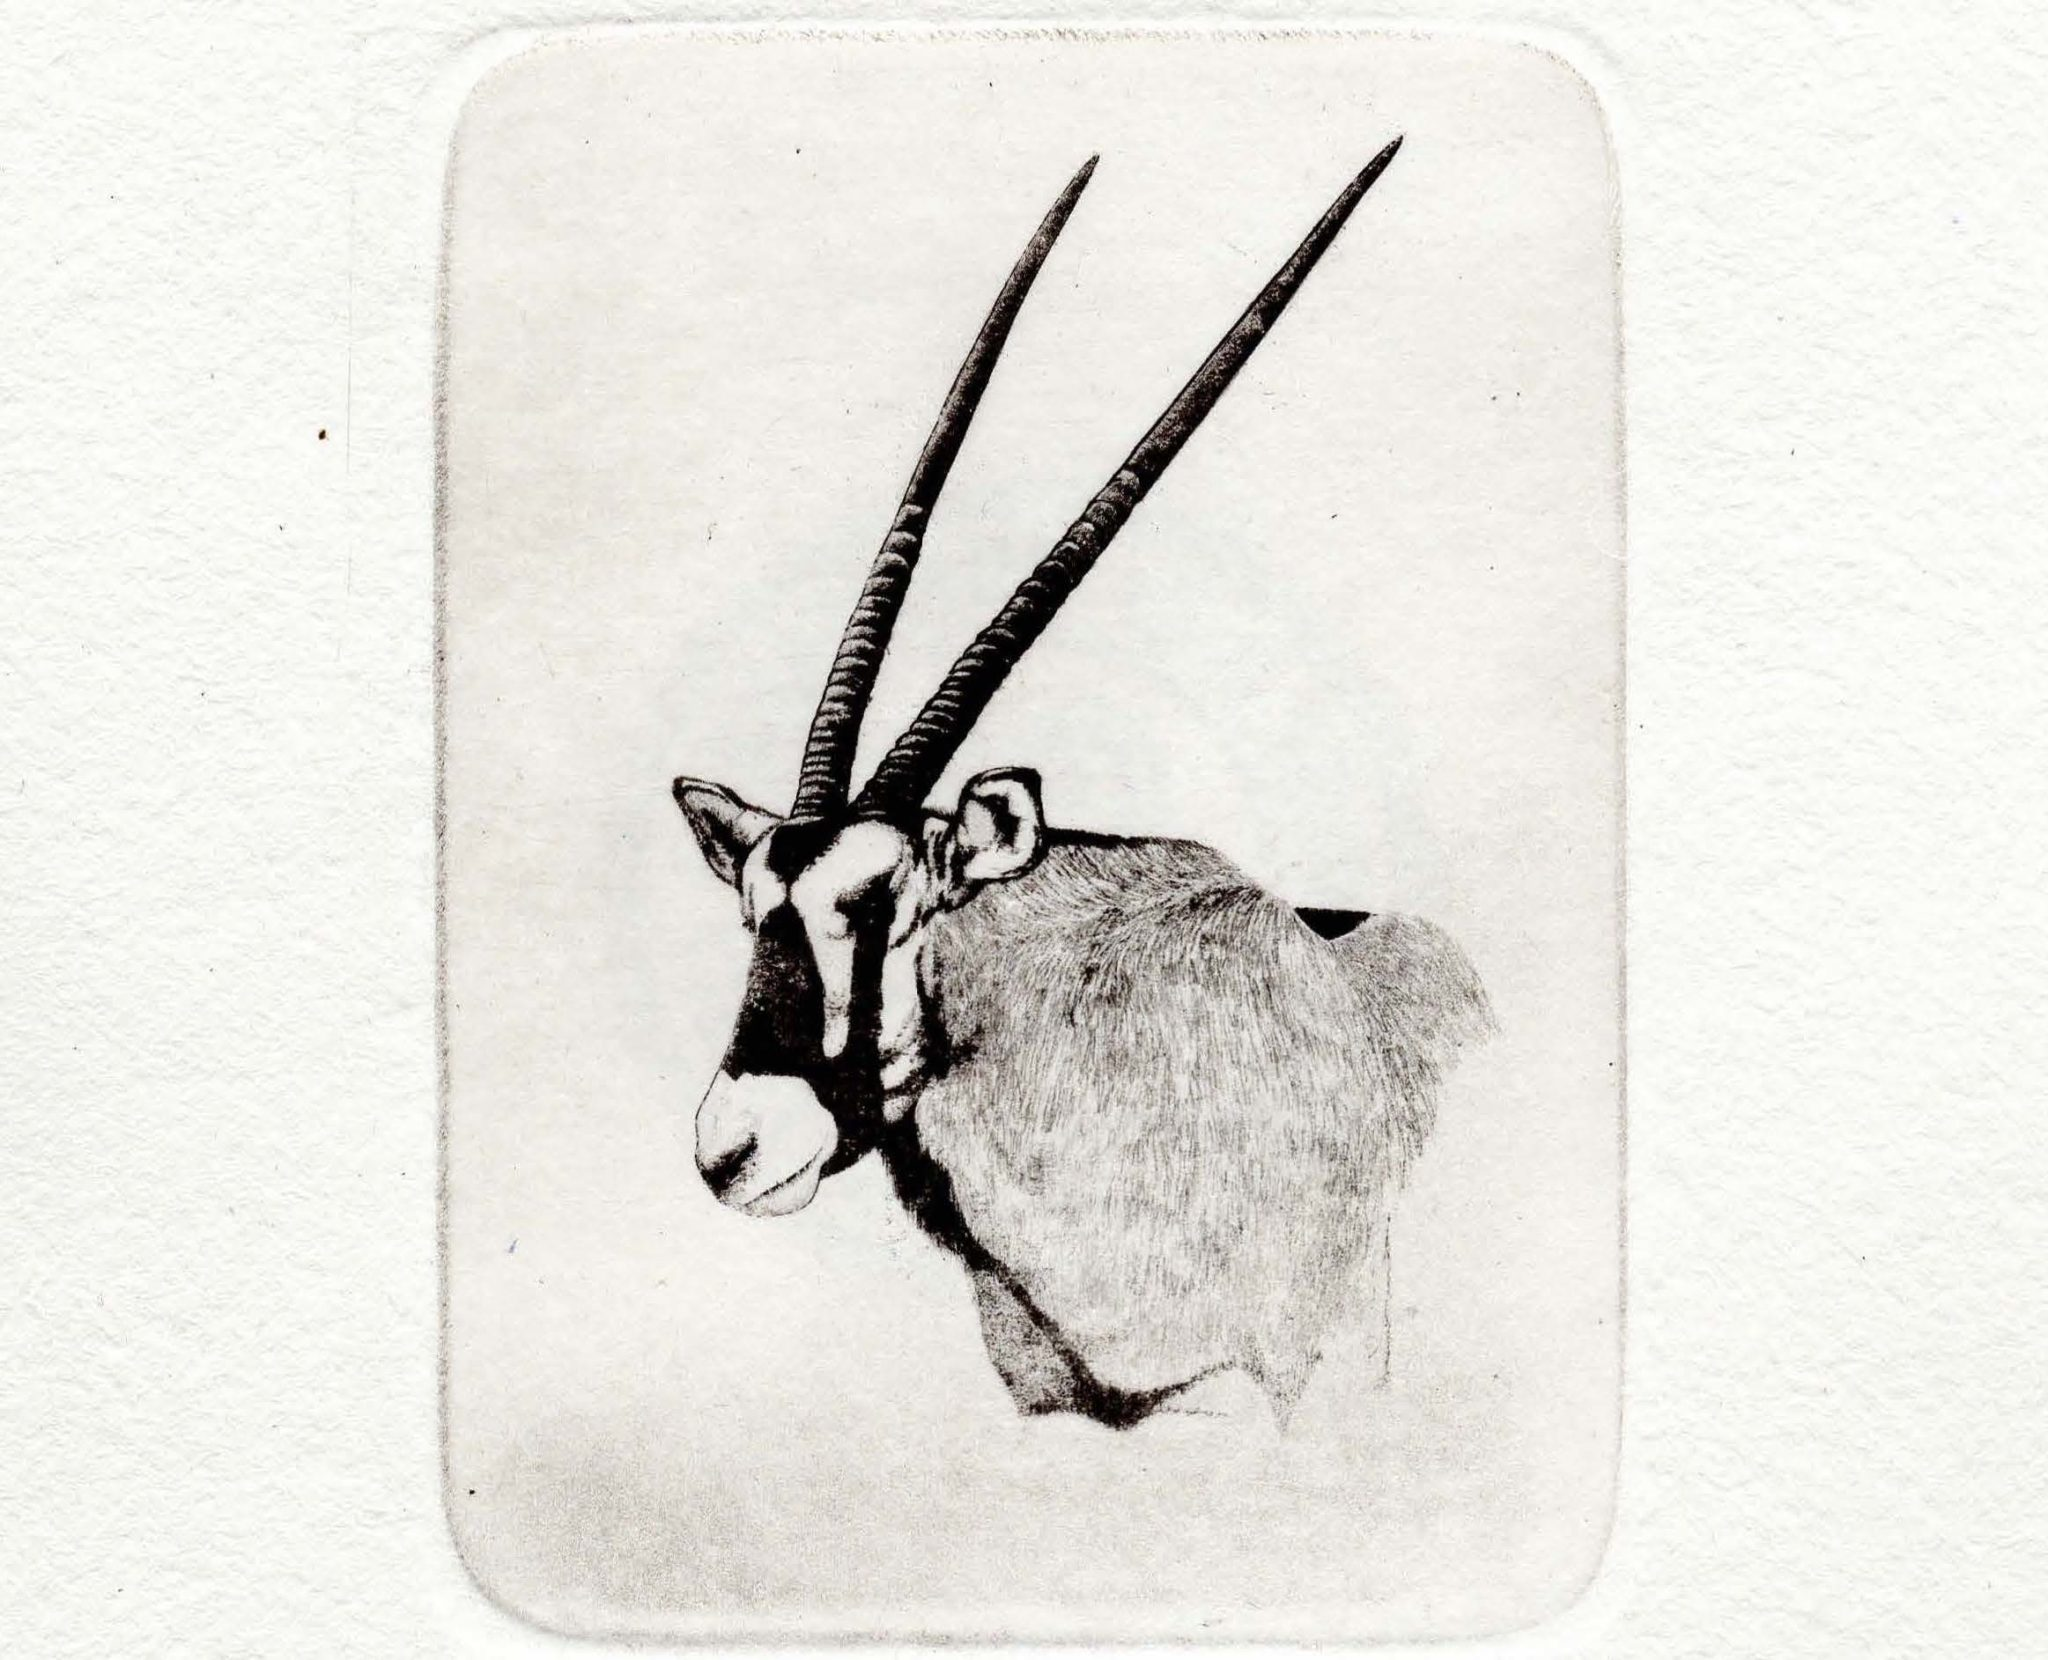 Oryx stamp limited edition print